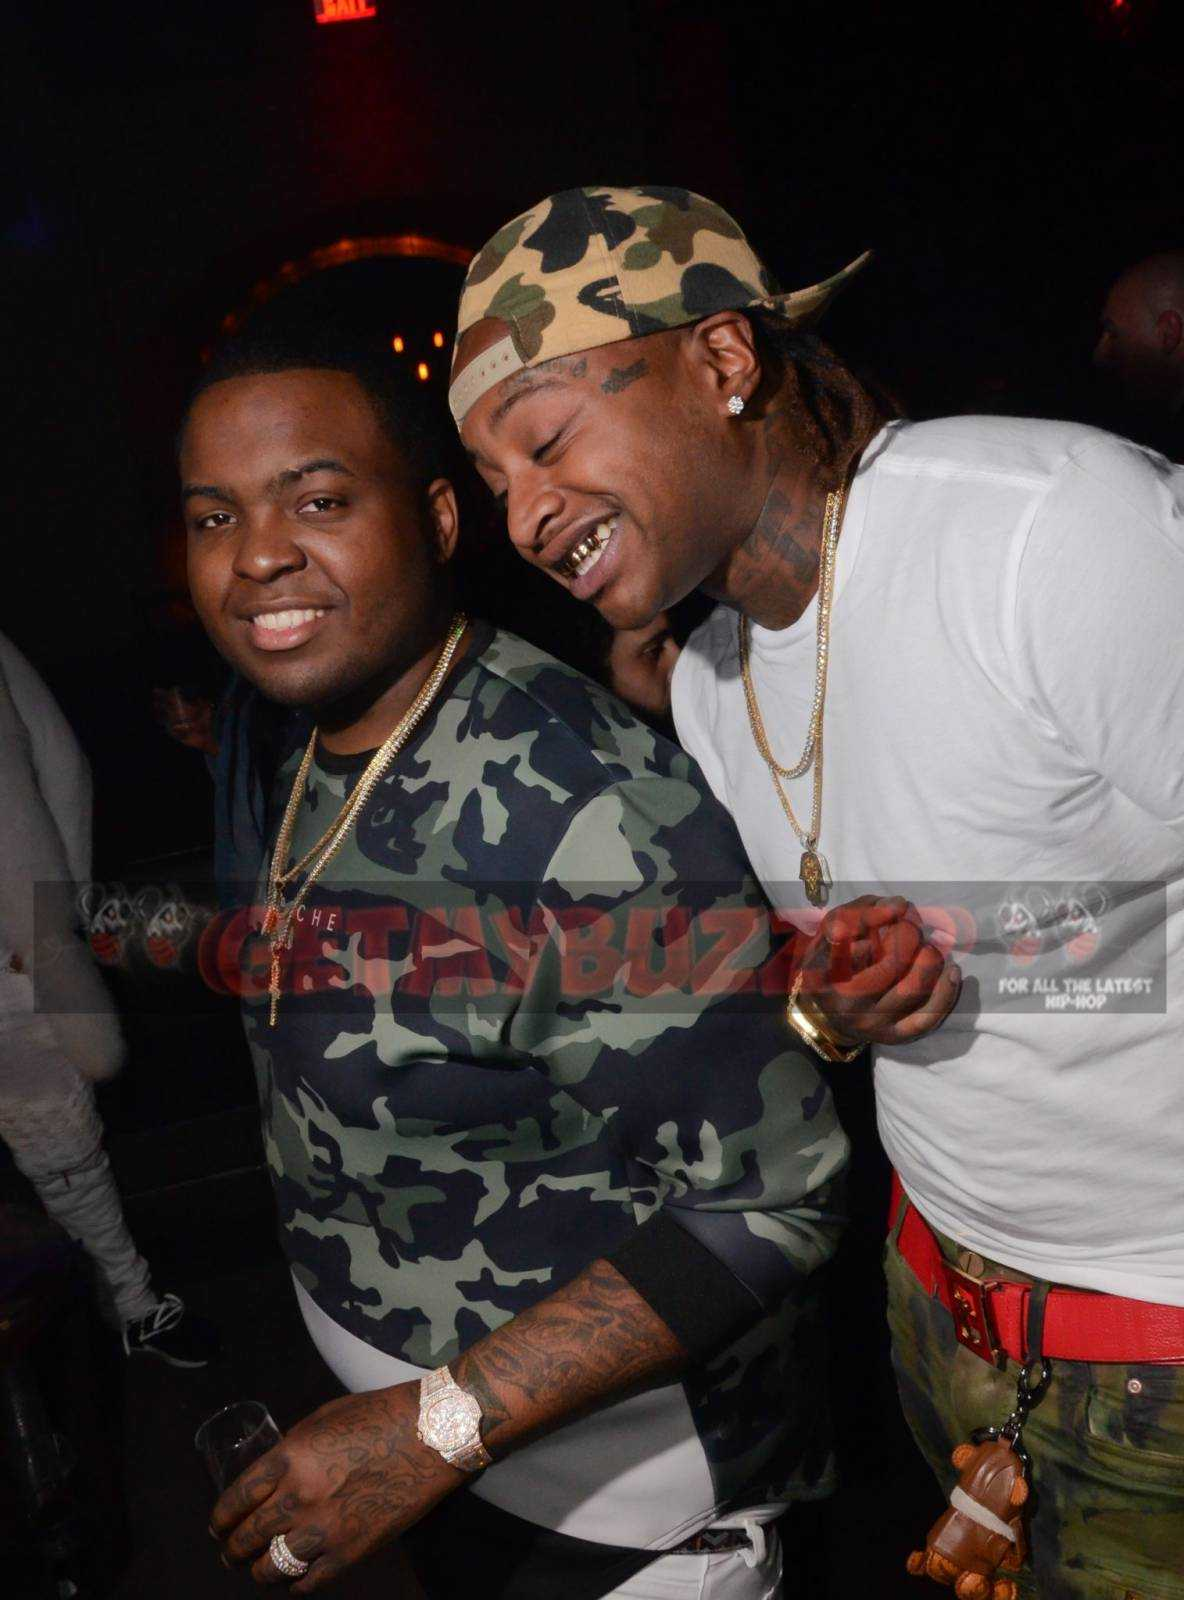 Celeb Sighting: Sean Kingston at Marquee Nightclub Monday #MarqueeMondays [Photos]